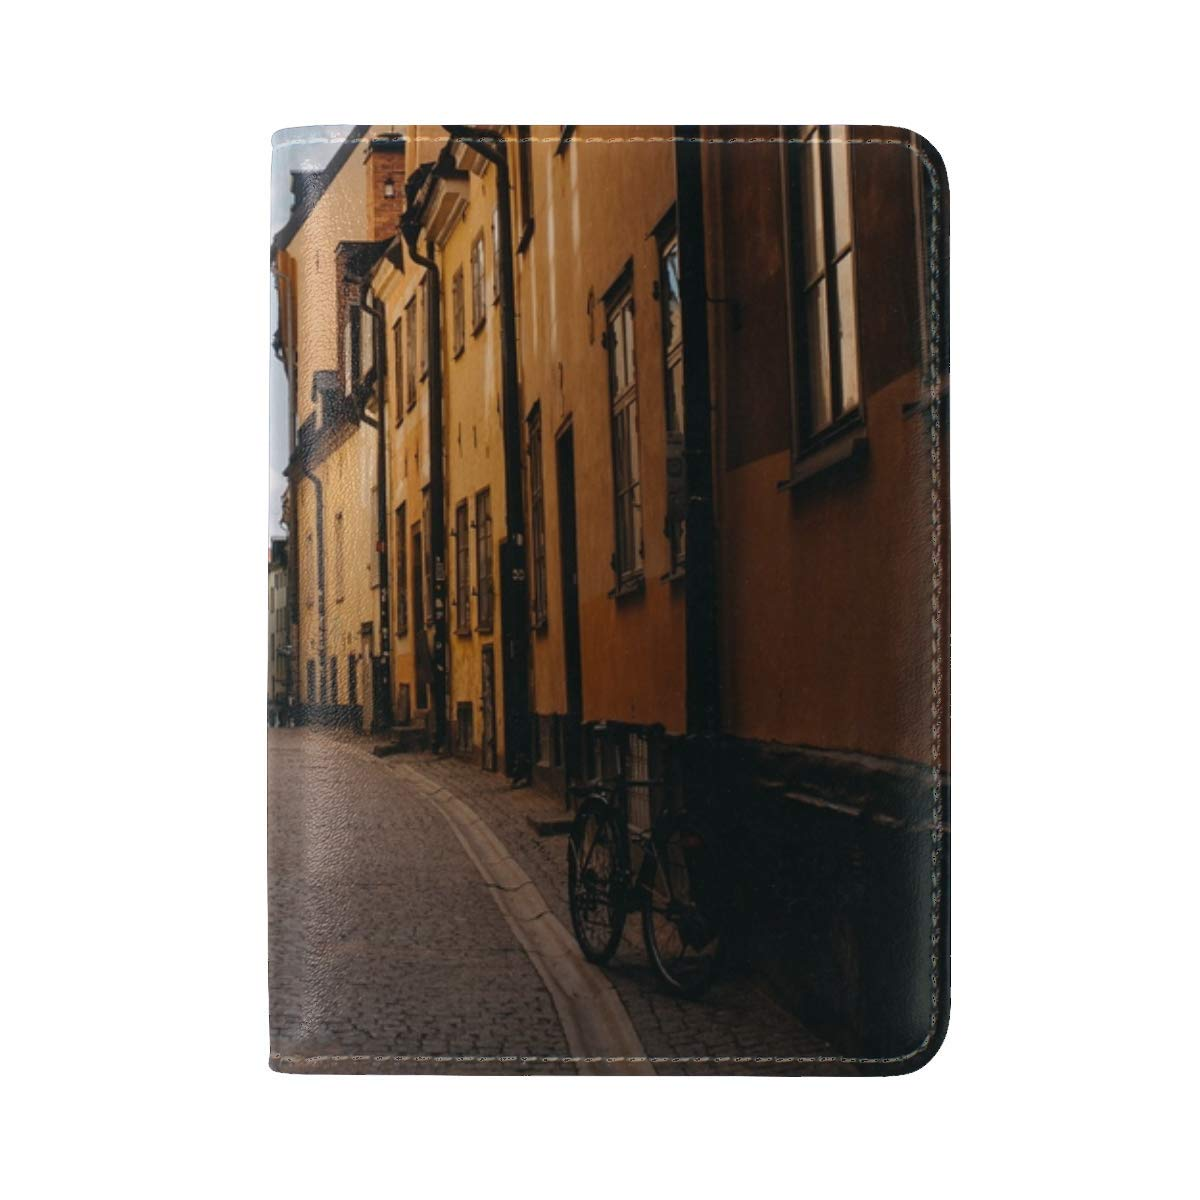 Street Buildings City Leather Passport Holder Cover Case Travel One Pocket